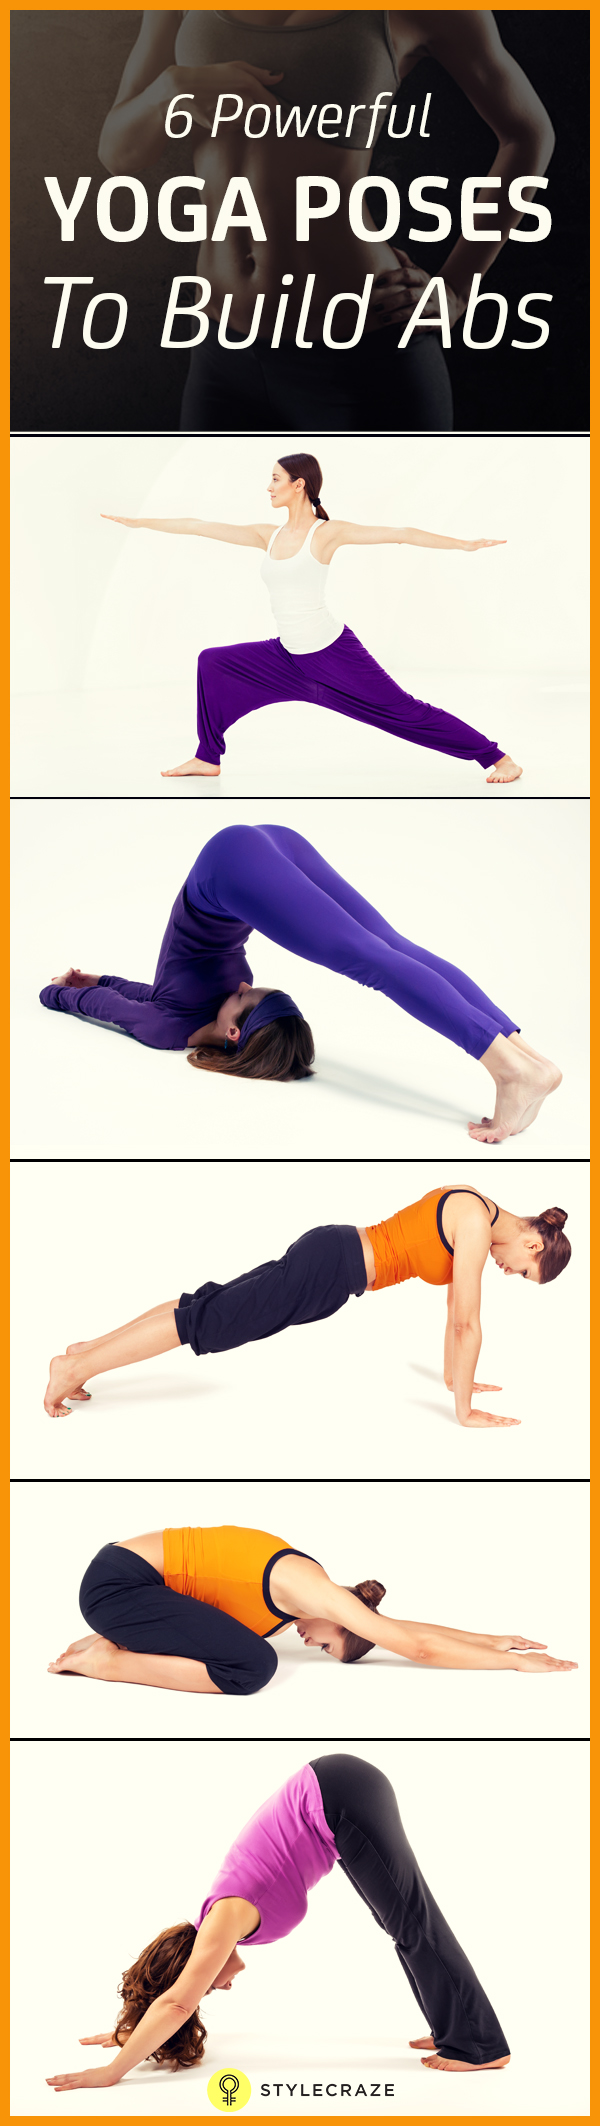 6 powerful yoga poses to build abs